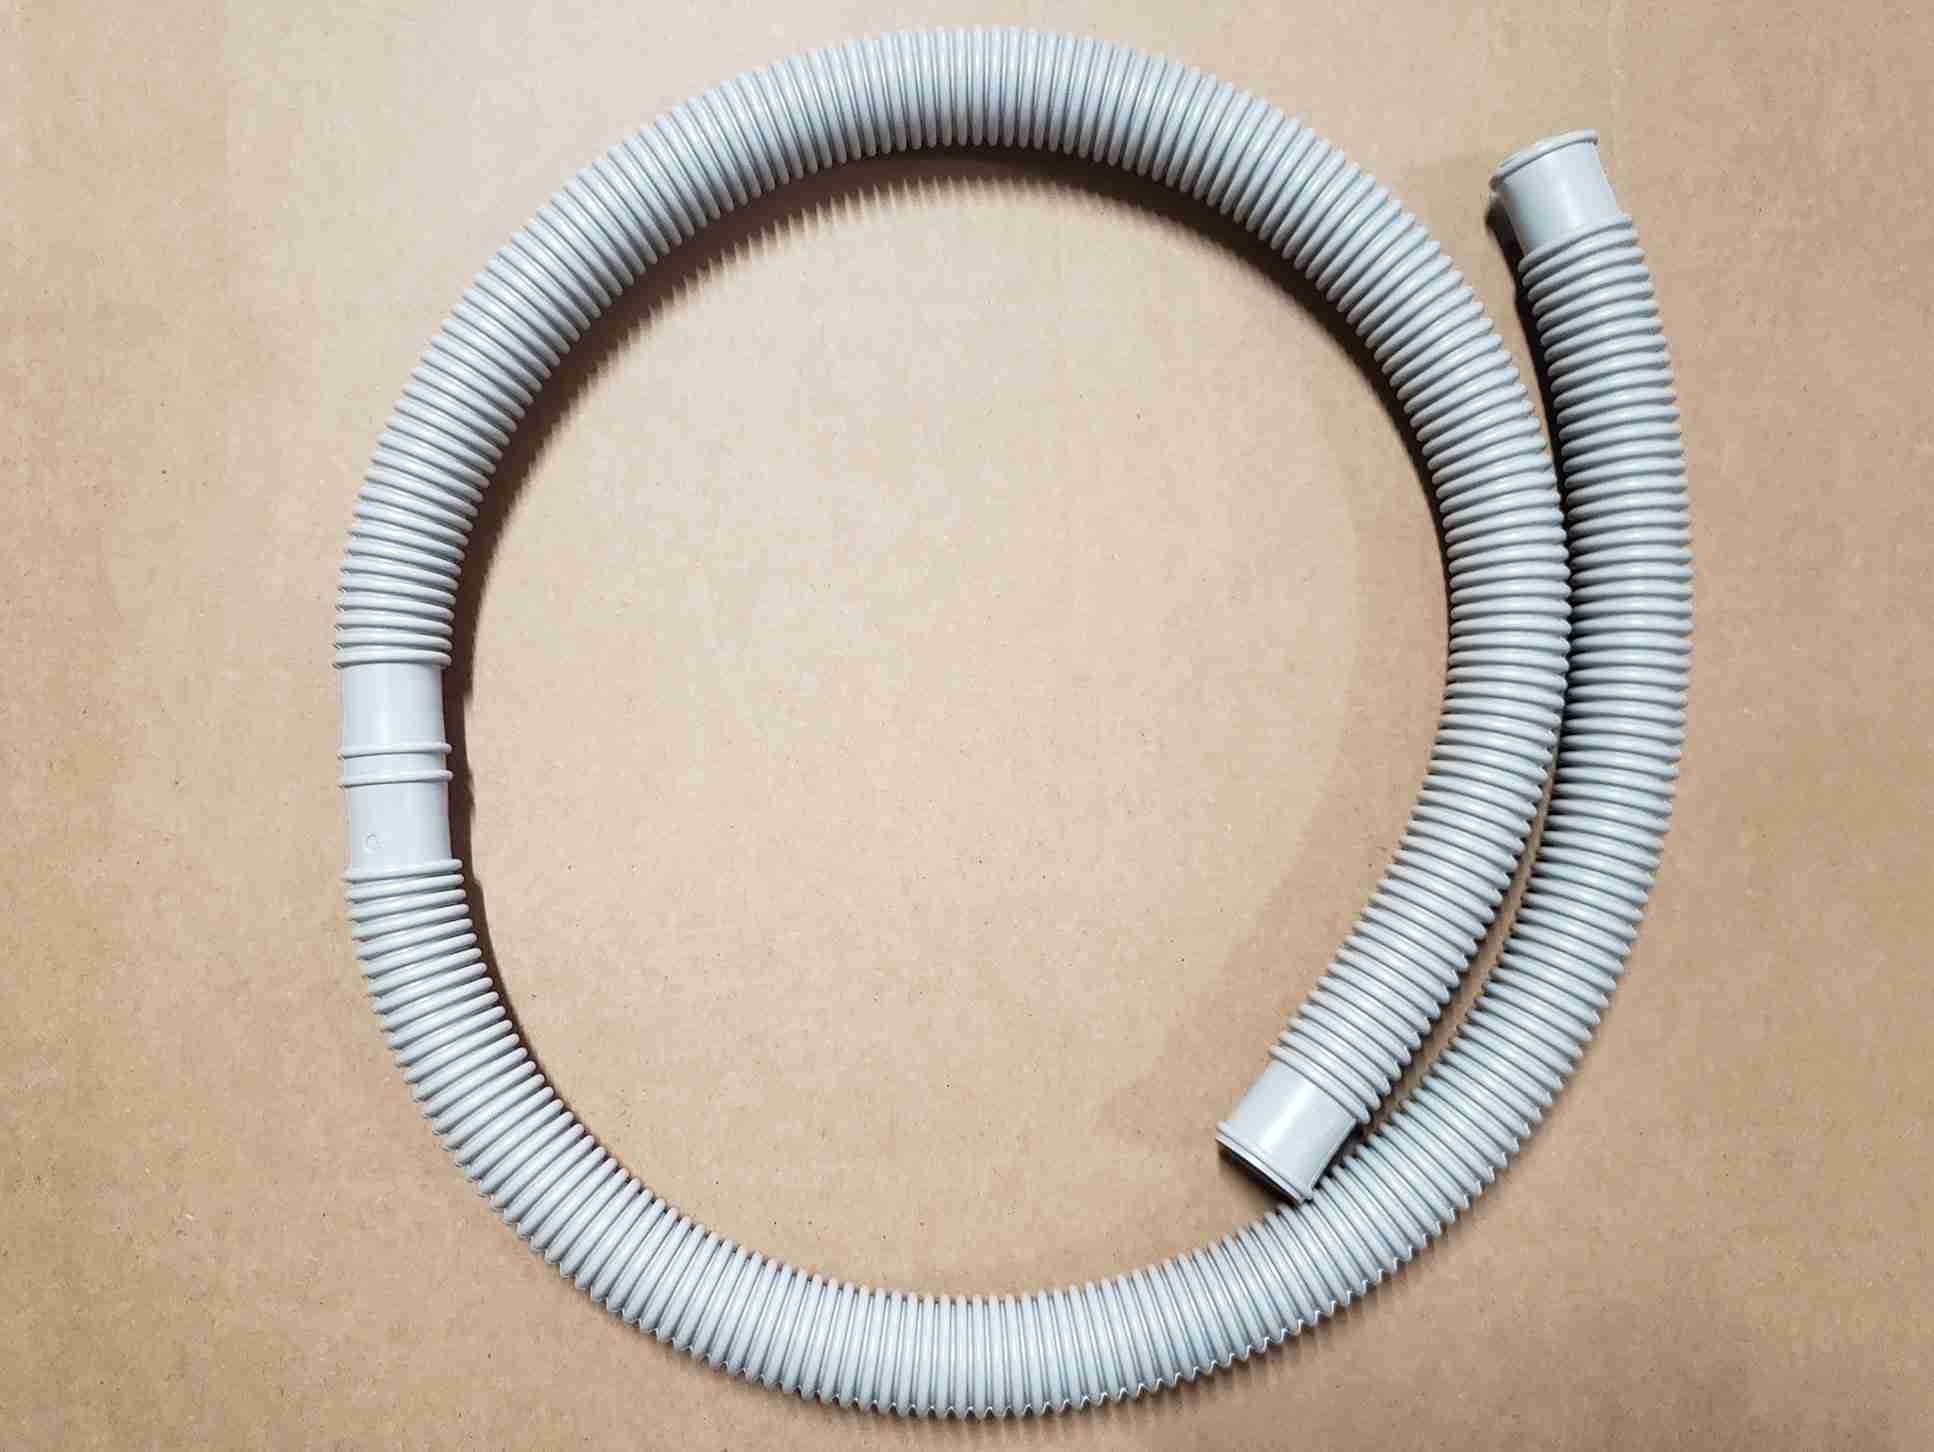 6ft Variant of Flex Hose with Double Cuffs for Above Ground Pool